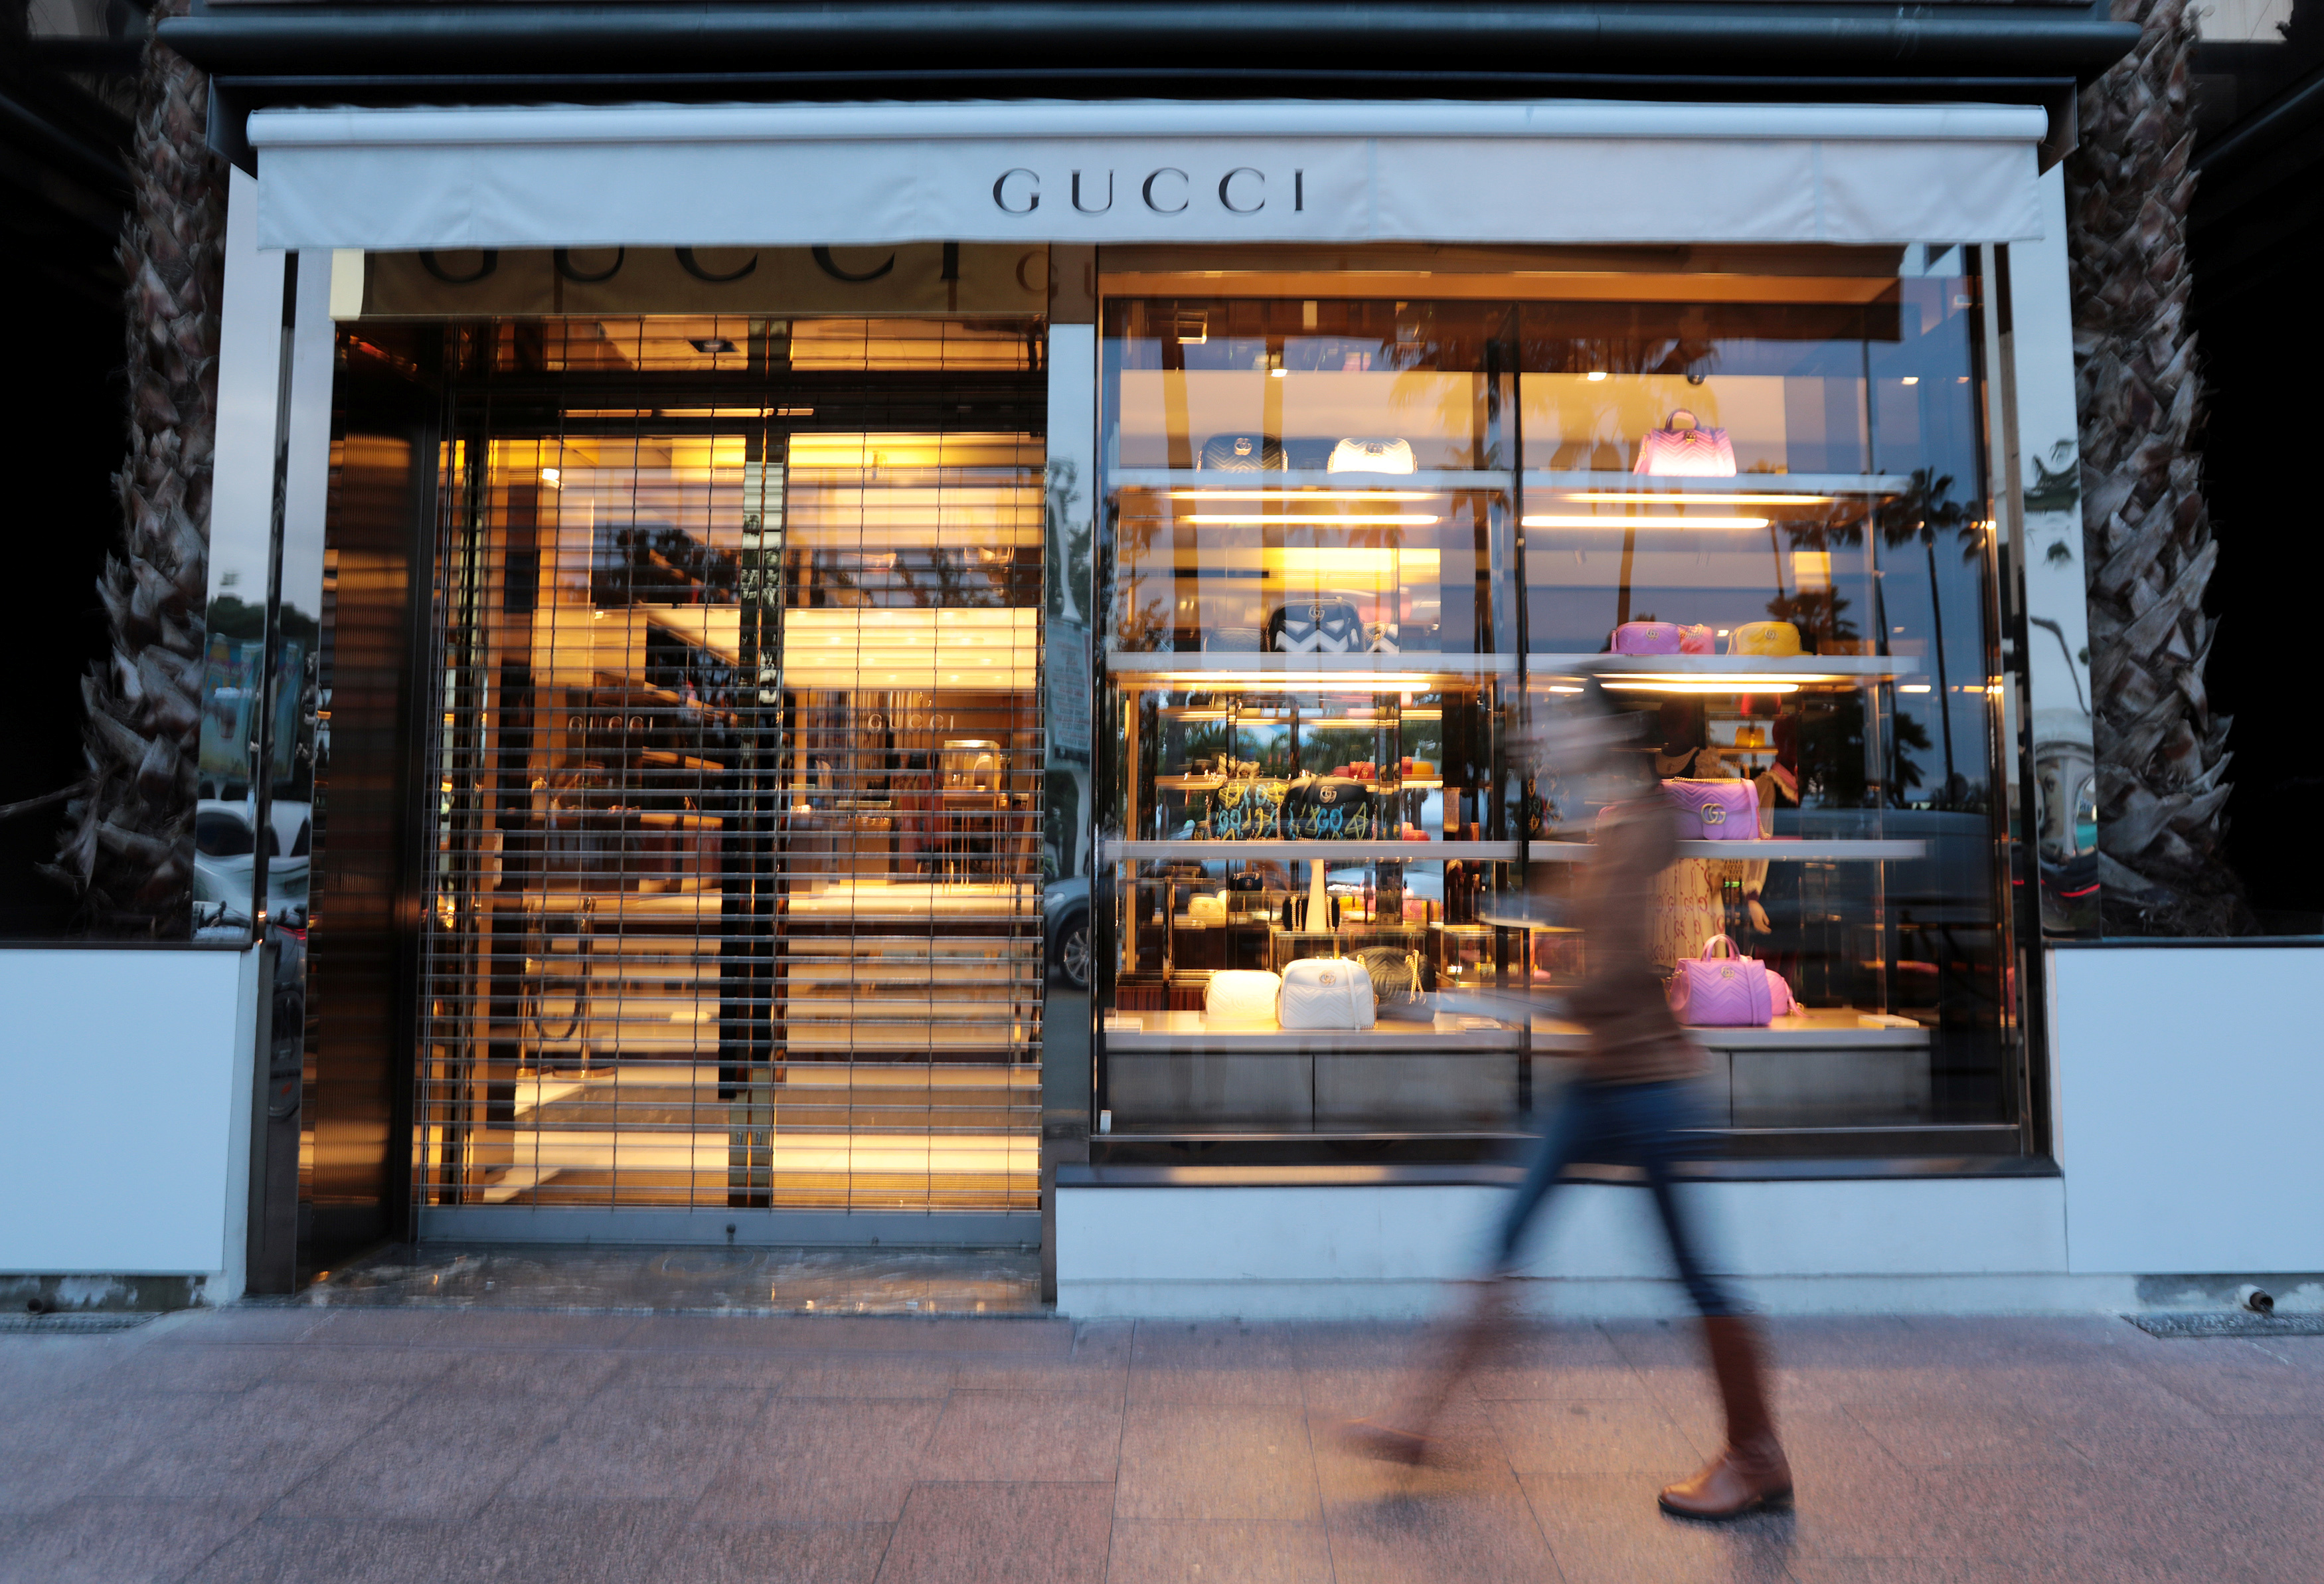 A woman walks past a store of Gucci brand in Cannes